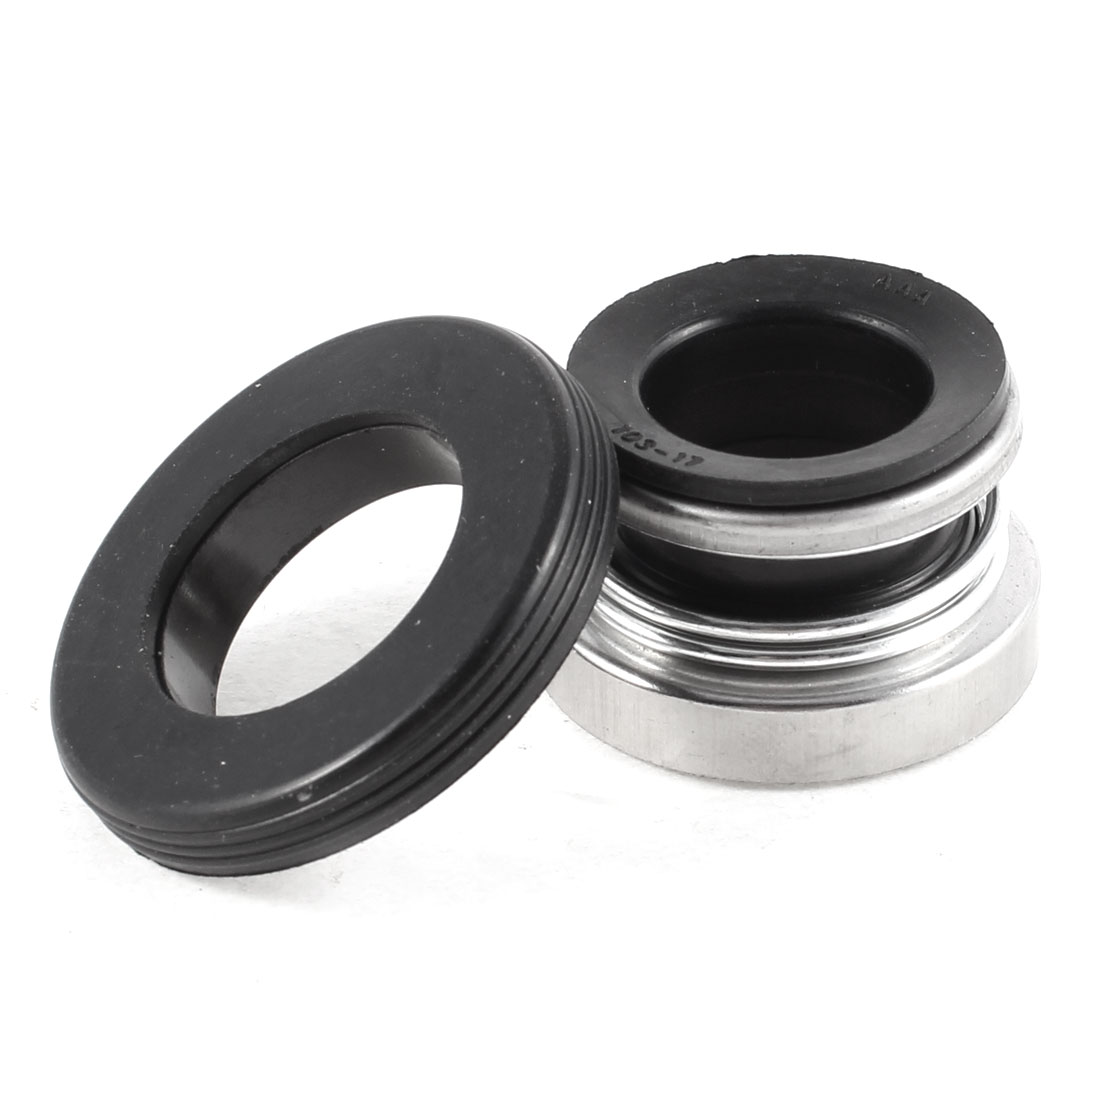 17mm Dia Rubber Bellows Sealing Mechanical Seal for Pump Shaft